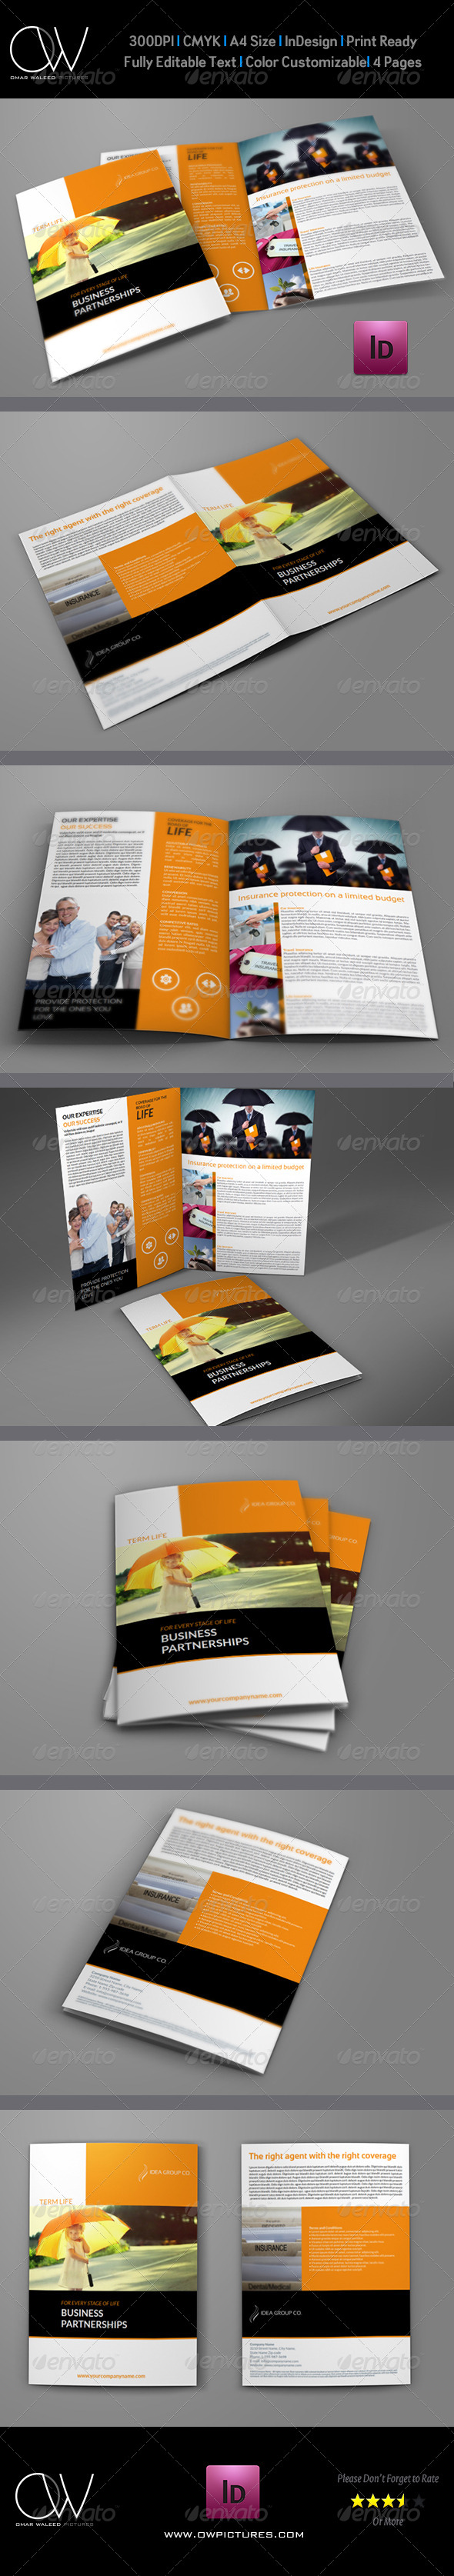 Company brochure insurance bi fold design template by owpictures company brochure insurance bi fold design template corporate brochures altavistaventures